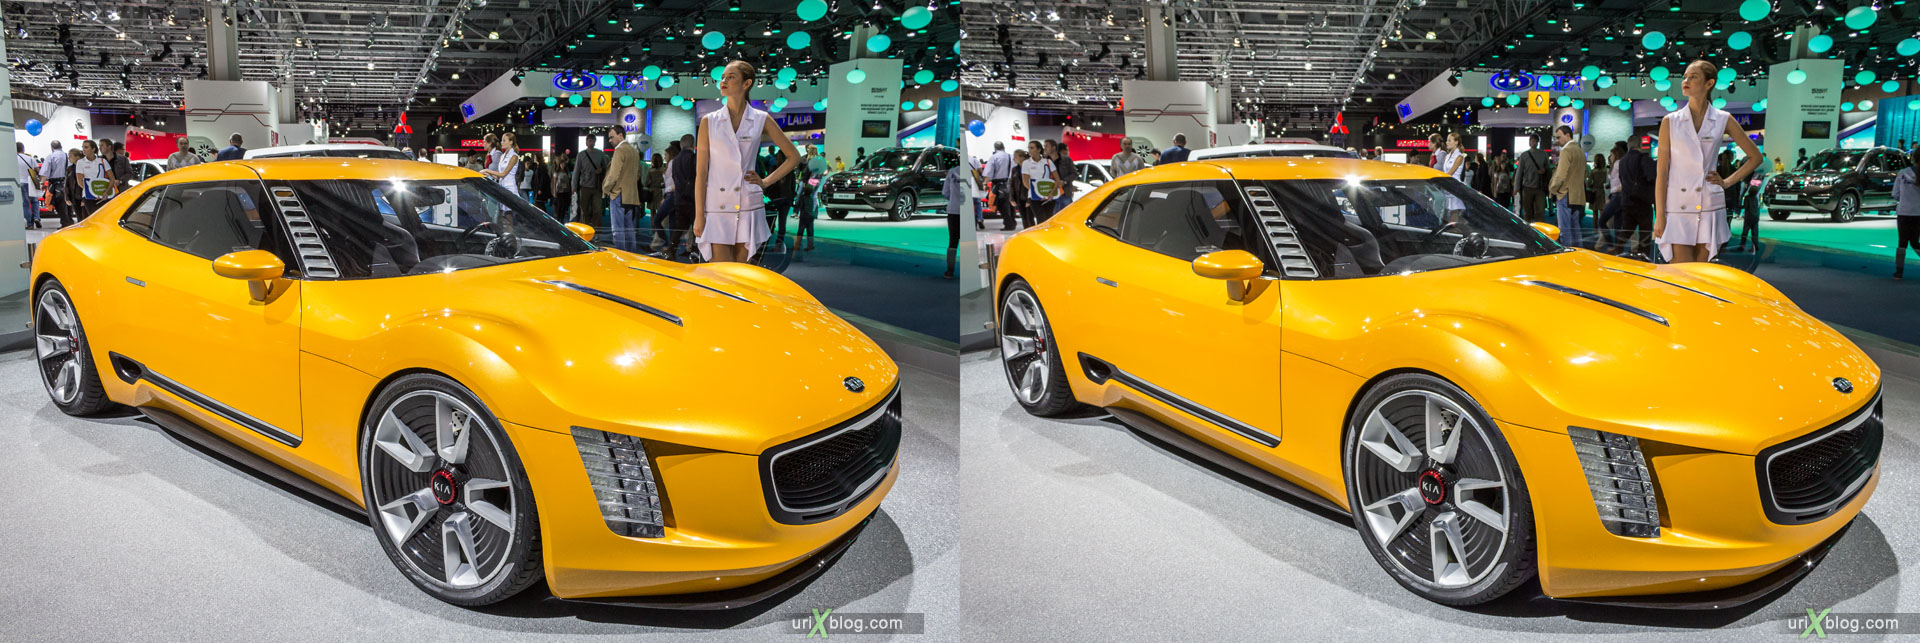 KIA, Moscow International Automobile Salon 2014, MIAS 2014, girls, models, Crocus Expo, Moscow, Russia, 3D, stereo pair, cross-eyed, crossview, cross view stereo pair, stereoscopic, 2014